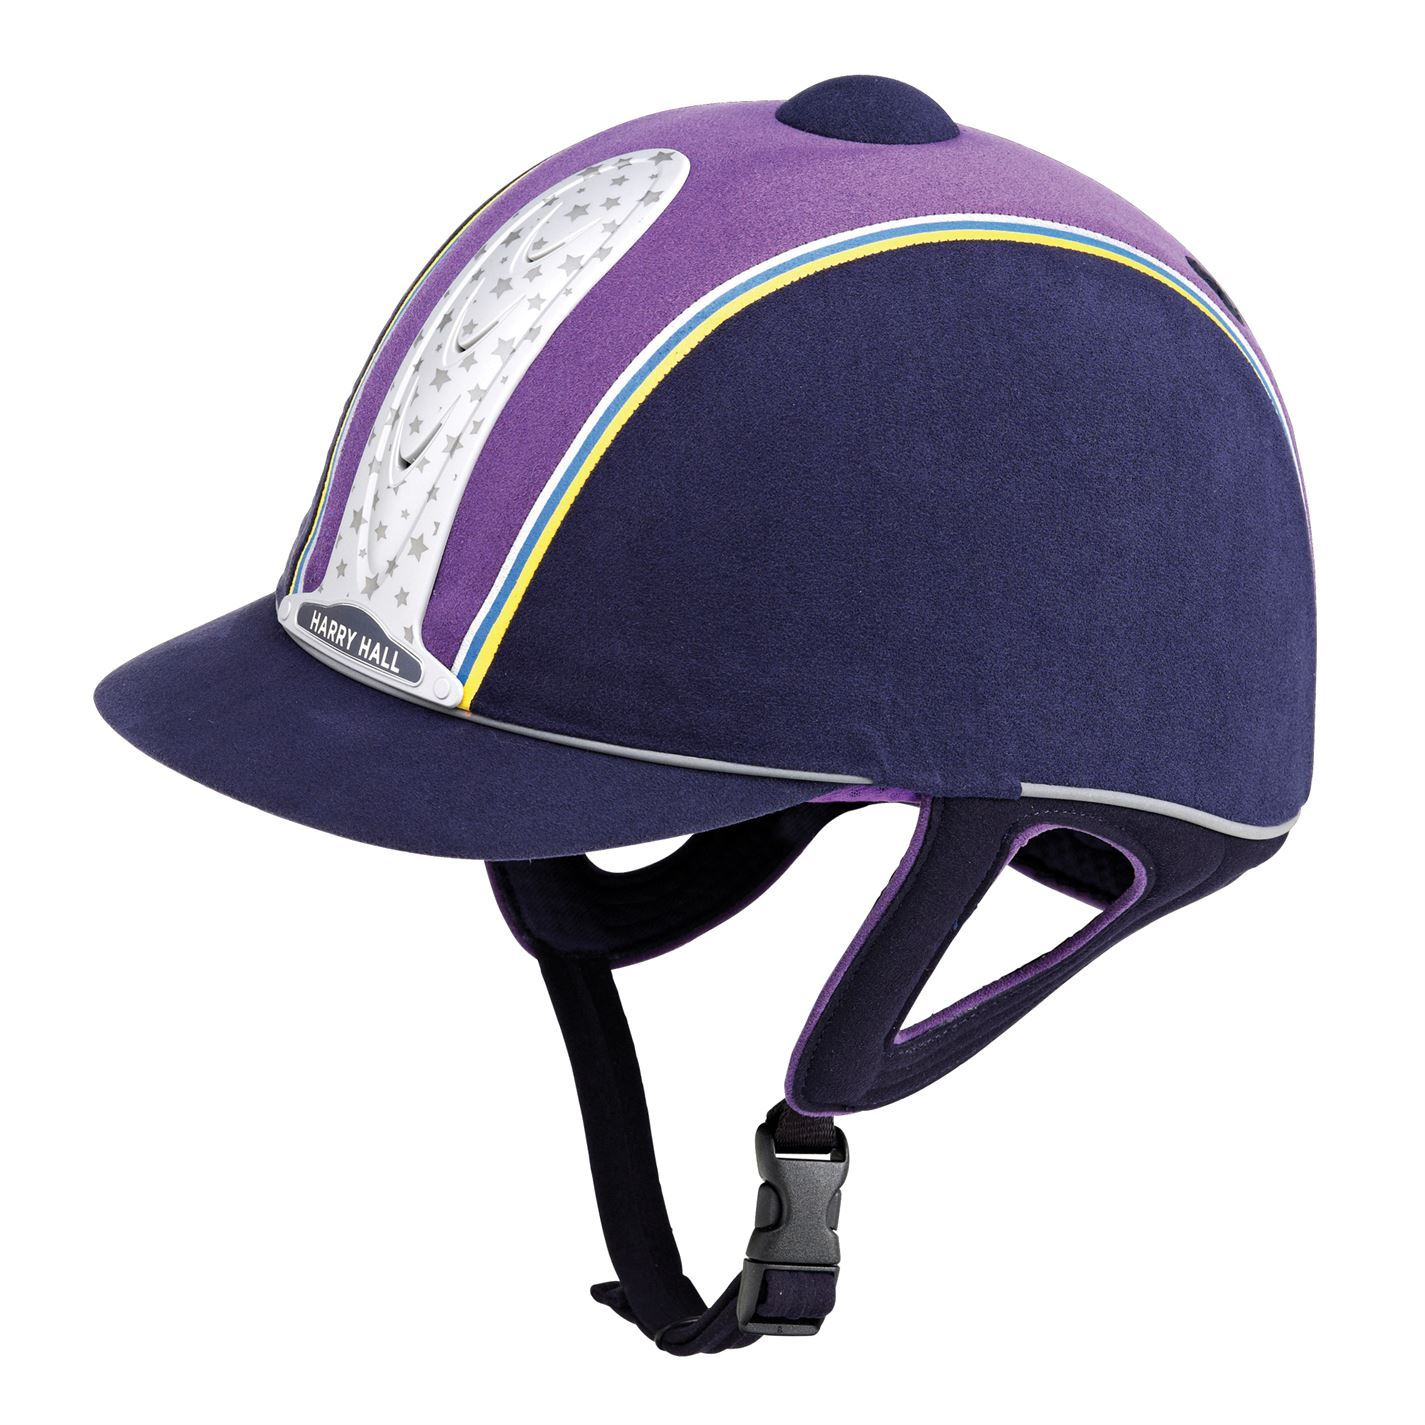 Harry Hall Unisex PAS Legend Plus PAS Unisex Riding Hat Print Printed Ventilation 04b0c6